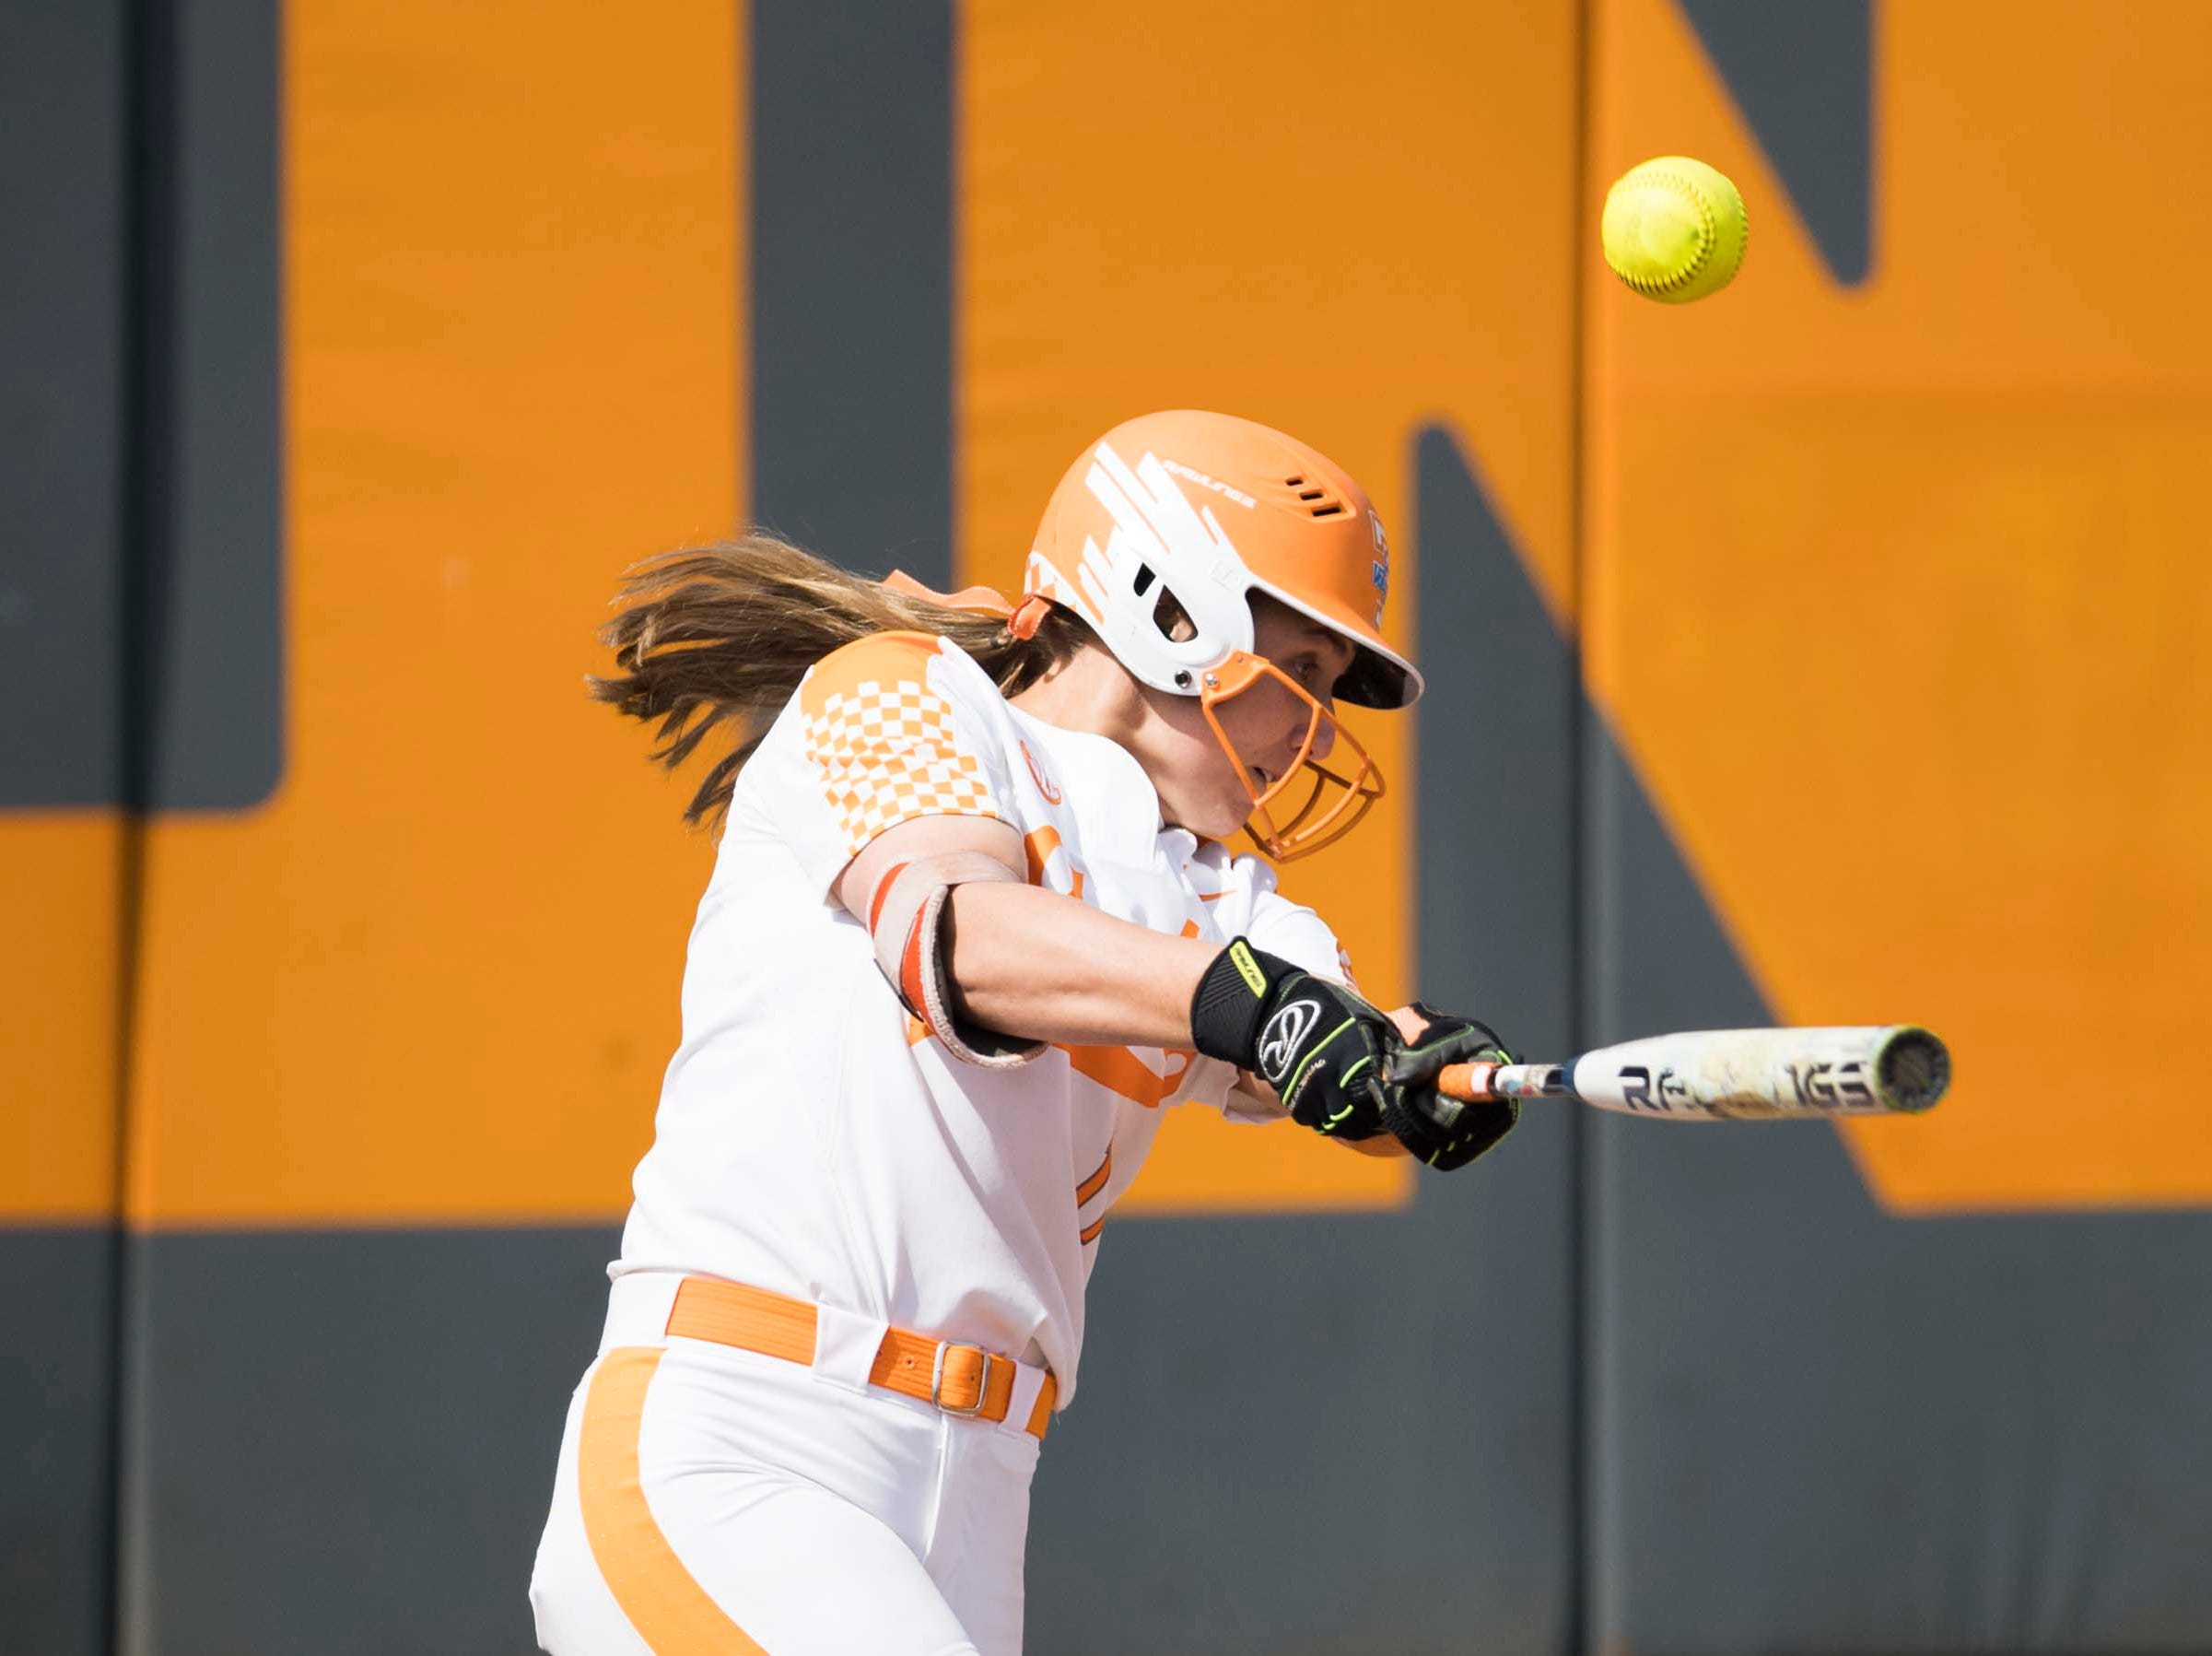 Tennessee outfielder Haley Bearden (11) hits a foul ball during a Lady Vols softball game against Arkansas at Sherri Parker Lee stadium on University of Tennessee's campus in Knoxville Sunday, March 24, 2019. The Lady Vols defeated Arkansas.